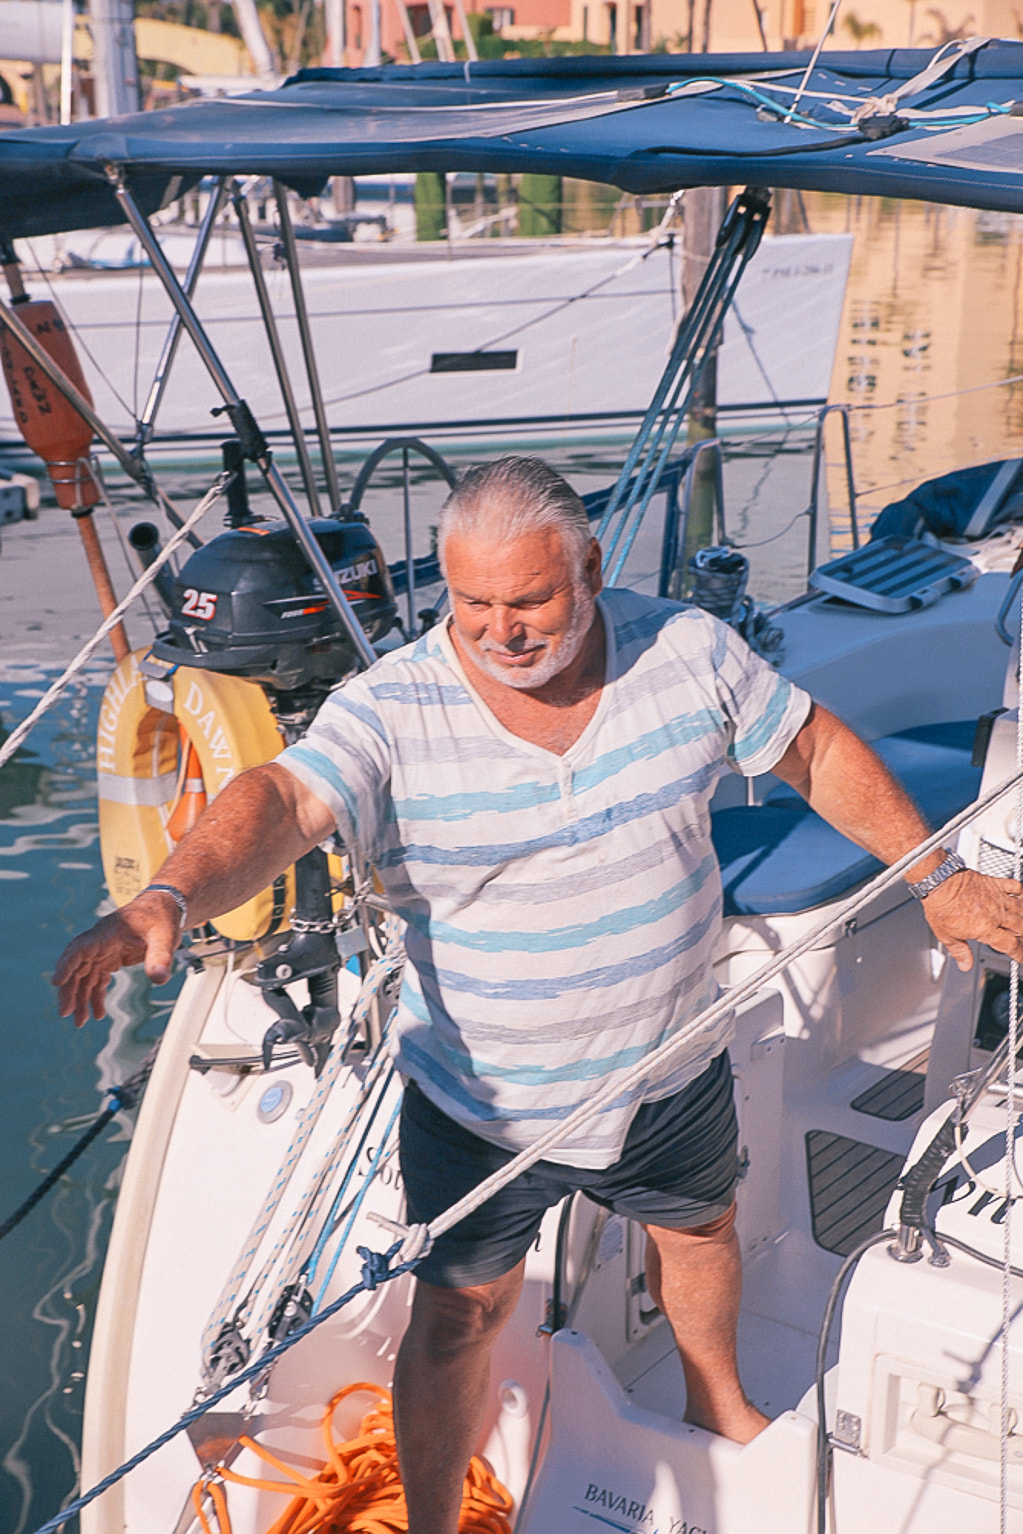 A surprise boat charter around the port of Sotogrande near Marbella, Spain by The Belle Blog